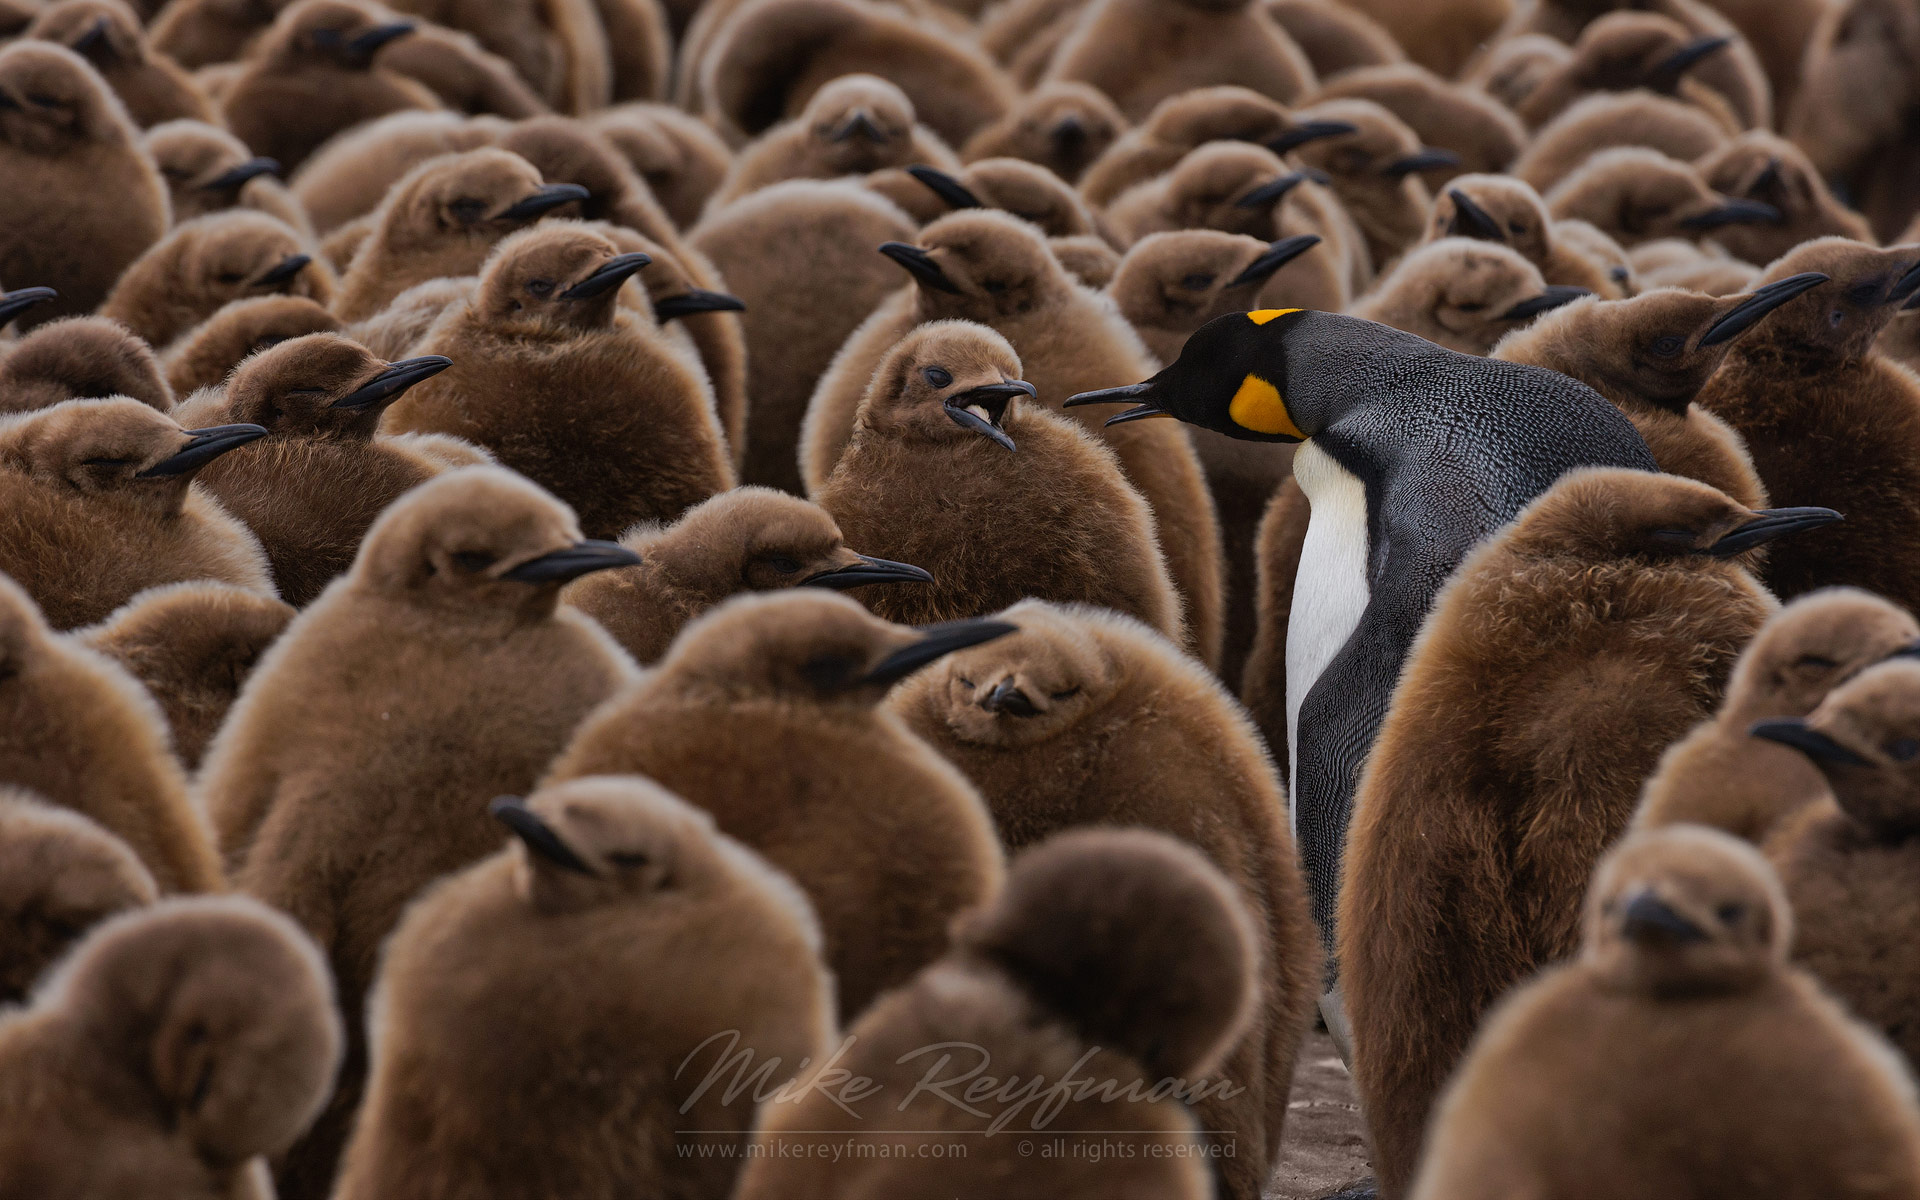 Adult King Penguin (Aptenodytes patagonicus) walking among youngsters and looking for its chick to feed it. King Penguin Creche. Salisbury Plain, South Georgia, Sub-Antarctic - King-Penguin-Chicks-In-Creche-South-Georgia-Sub-Antarctic - Mike Reyfman Photography